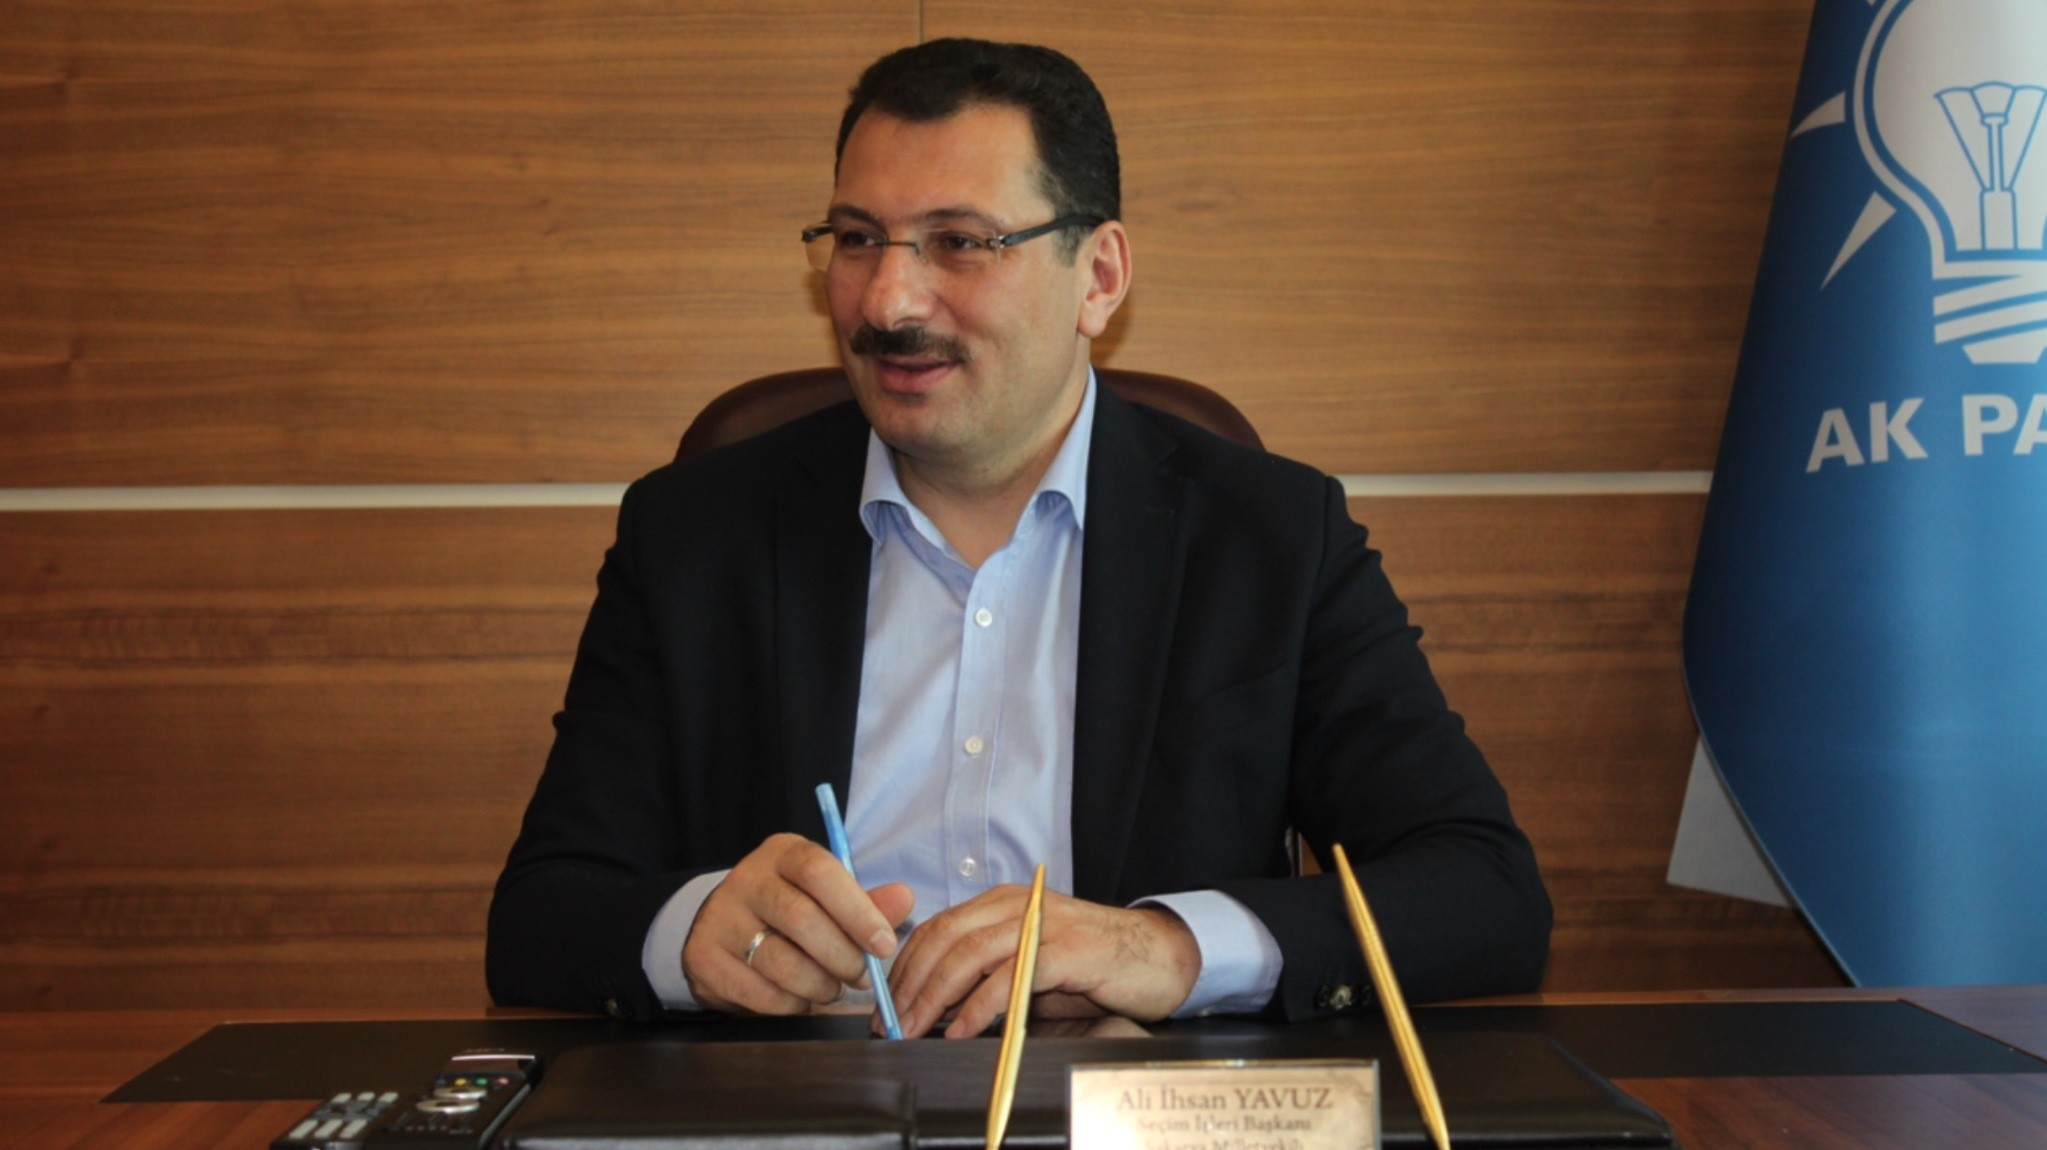 AK Party Deputy Chairman Ali u0130hsan Yavuz said for the upcoming local elections his party will nominate candidates who are able to connect effectively with the people.